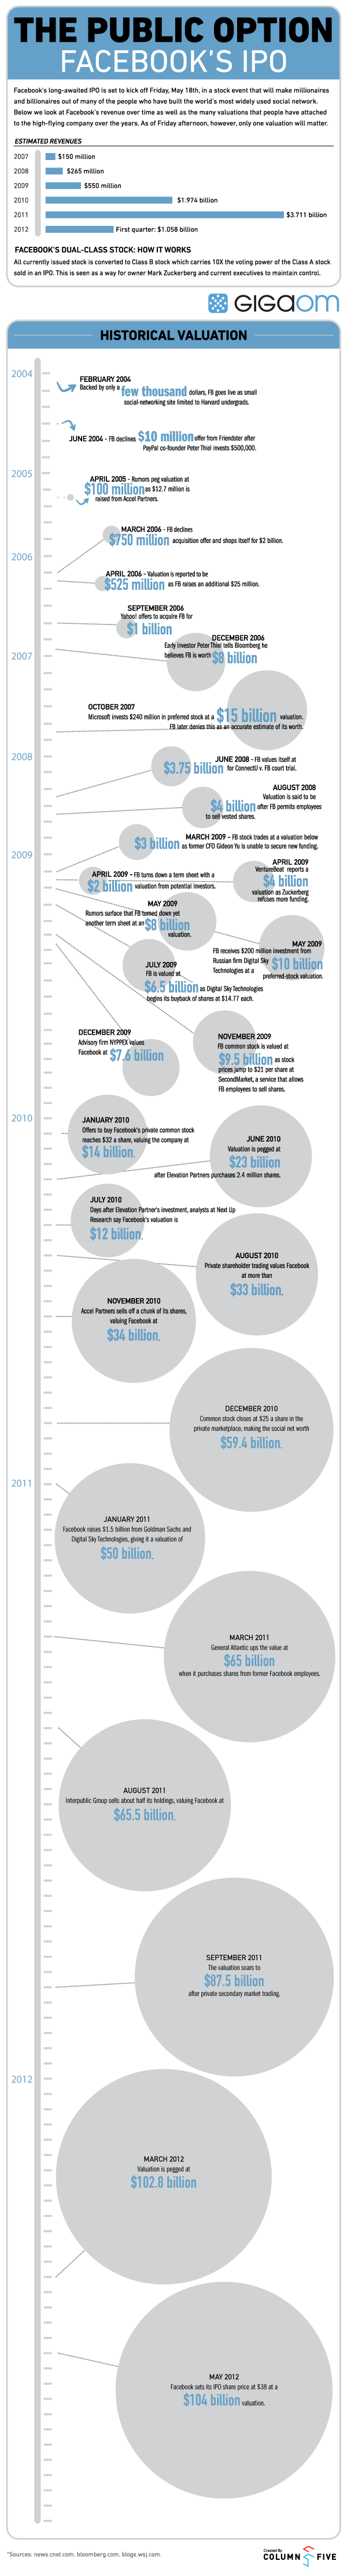 Infographic: A Look Back at Facebook's Revenue and Valuations